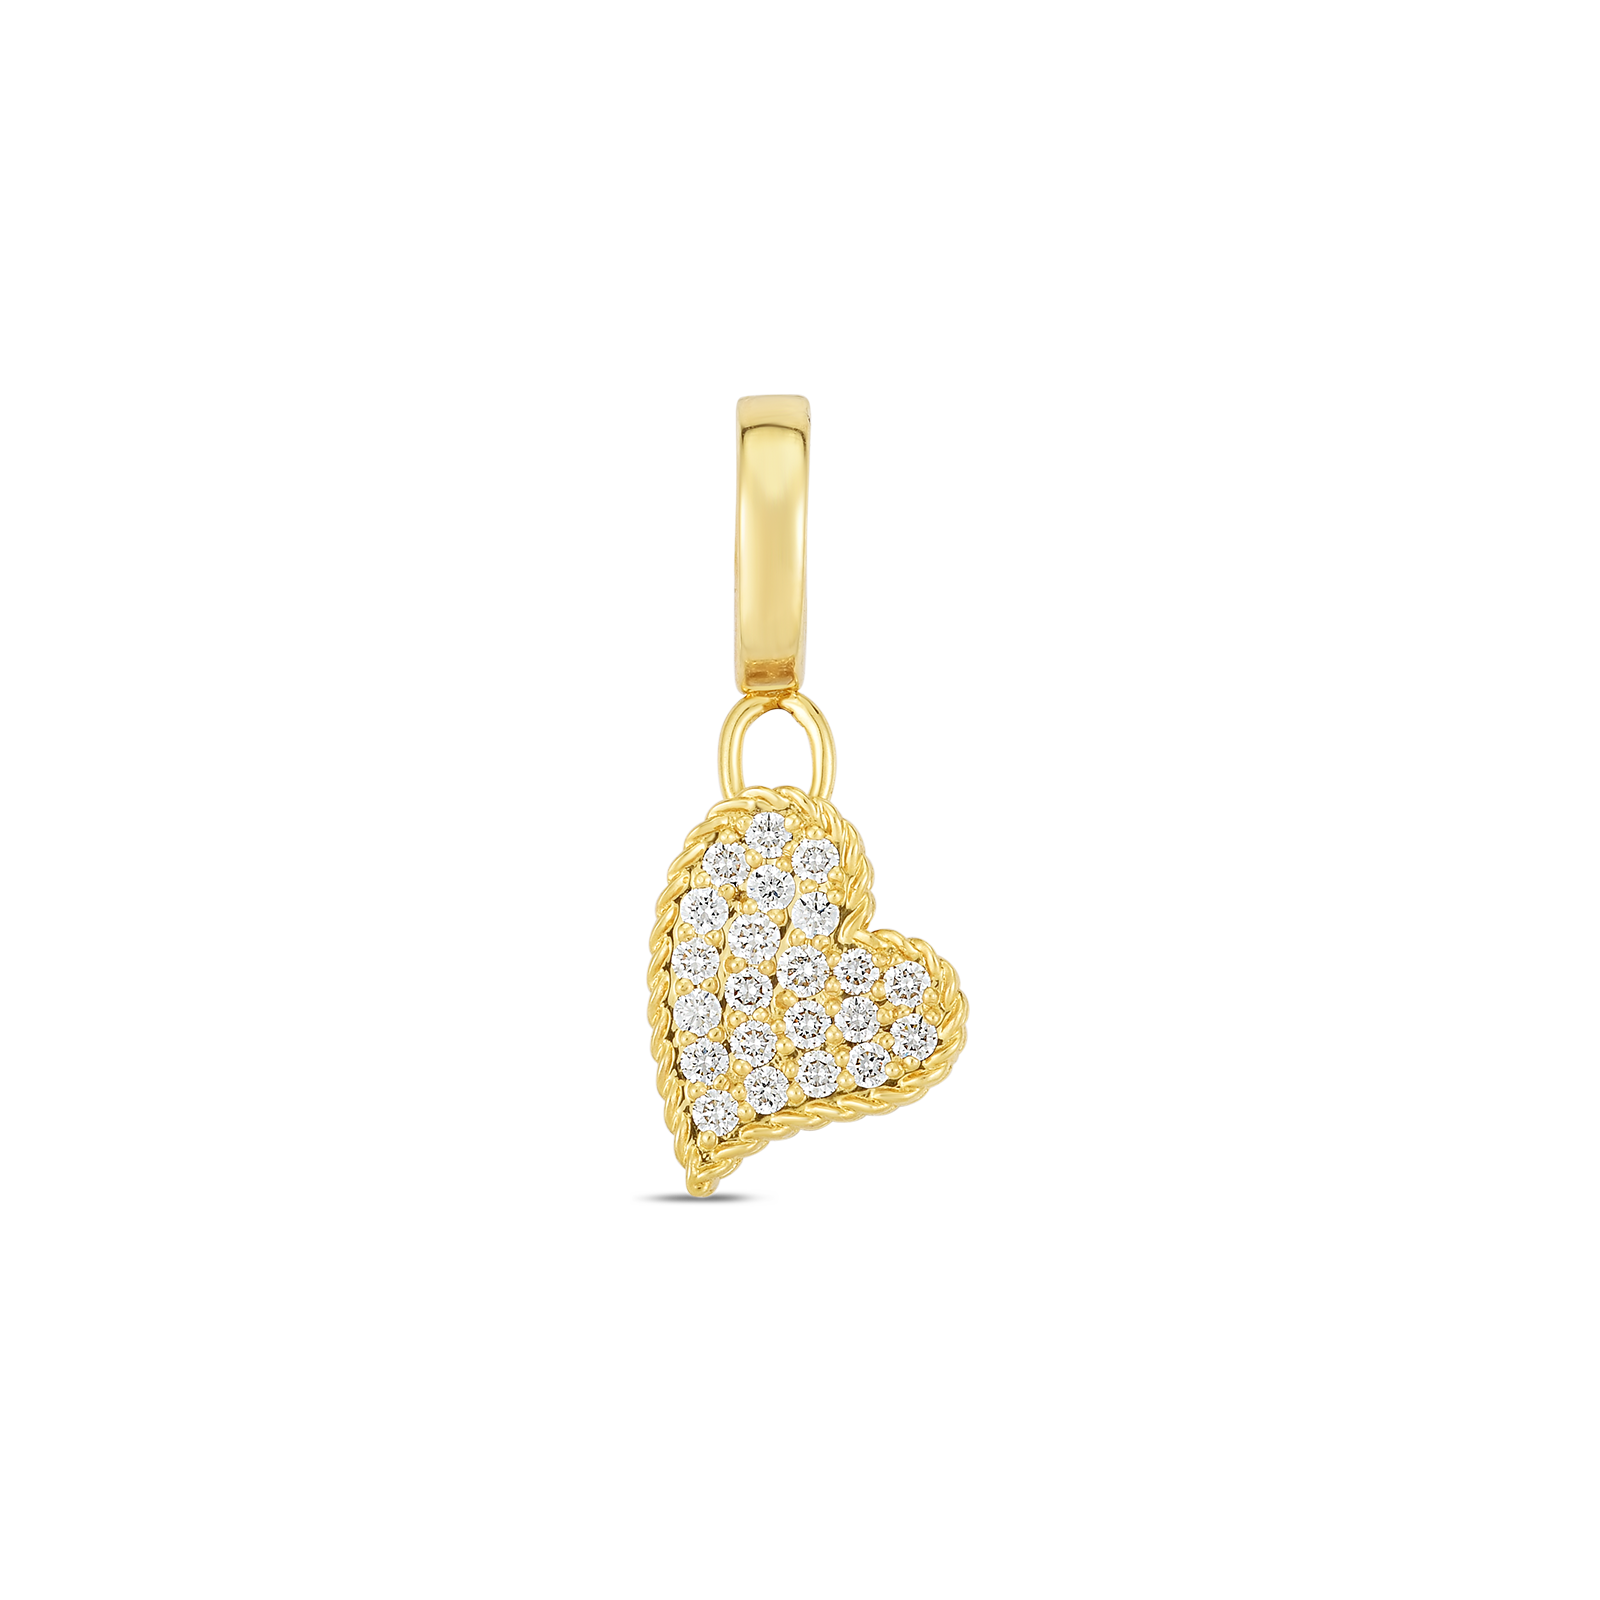 18k Gold & Diamond Princess Heart Charm